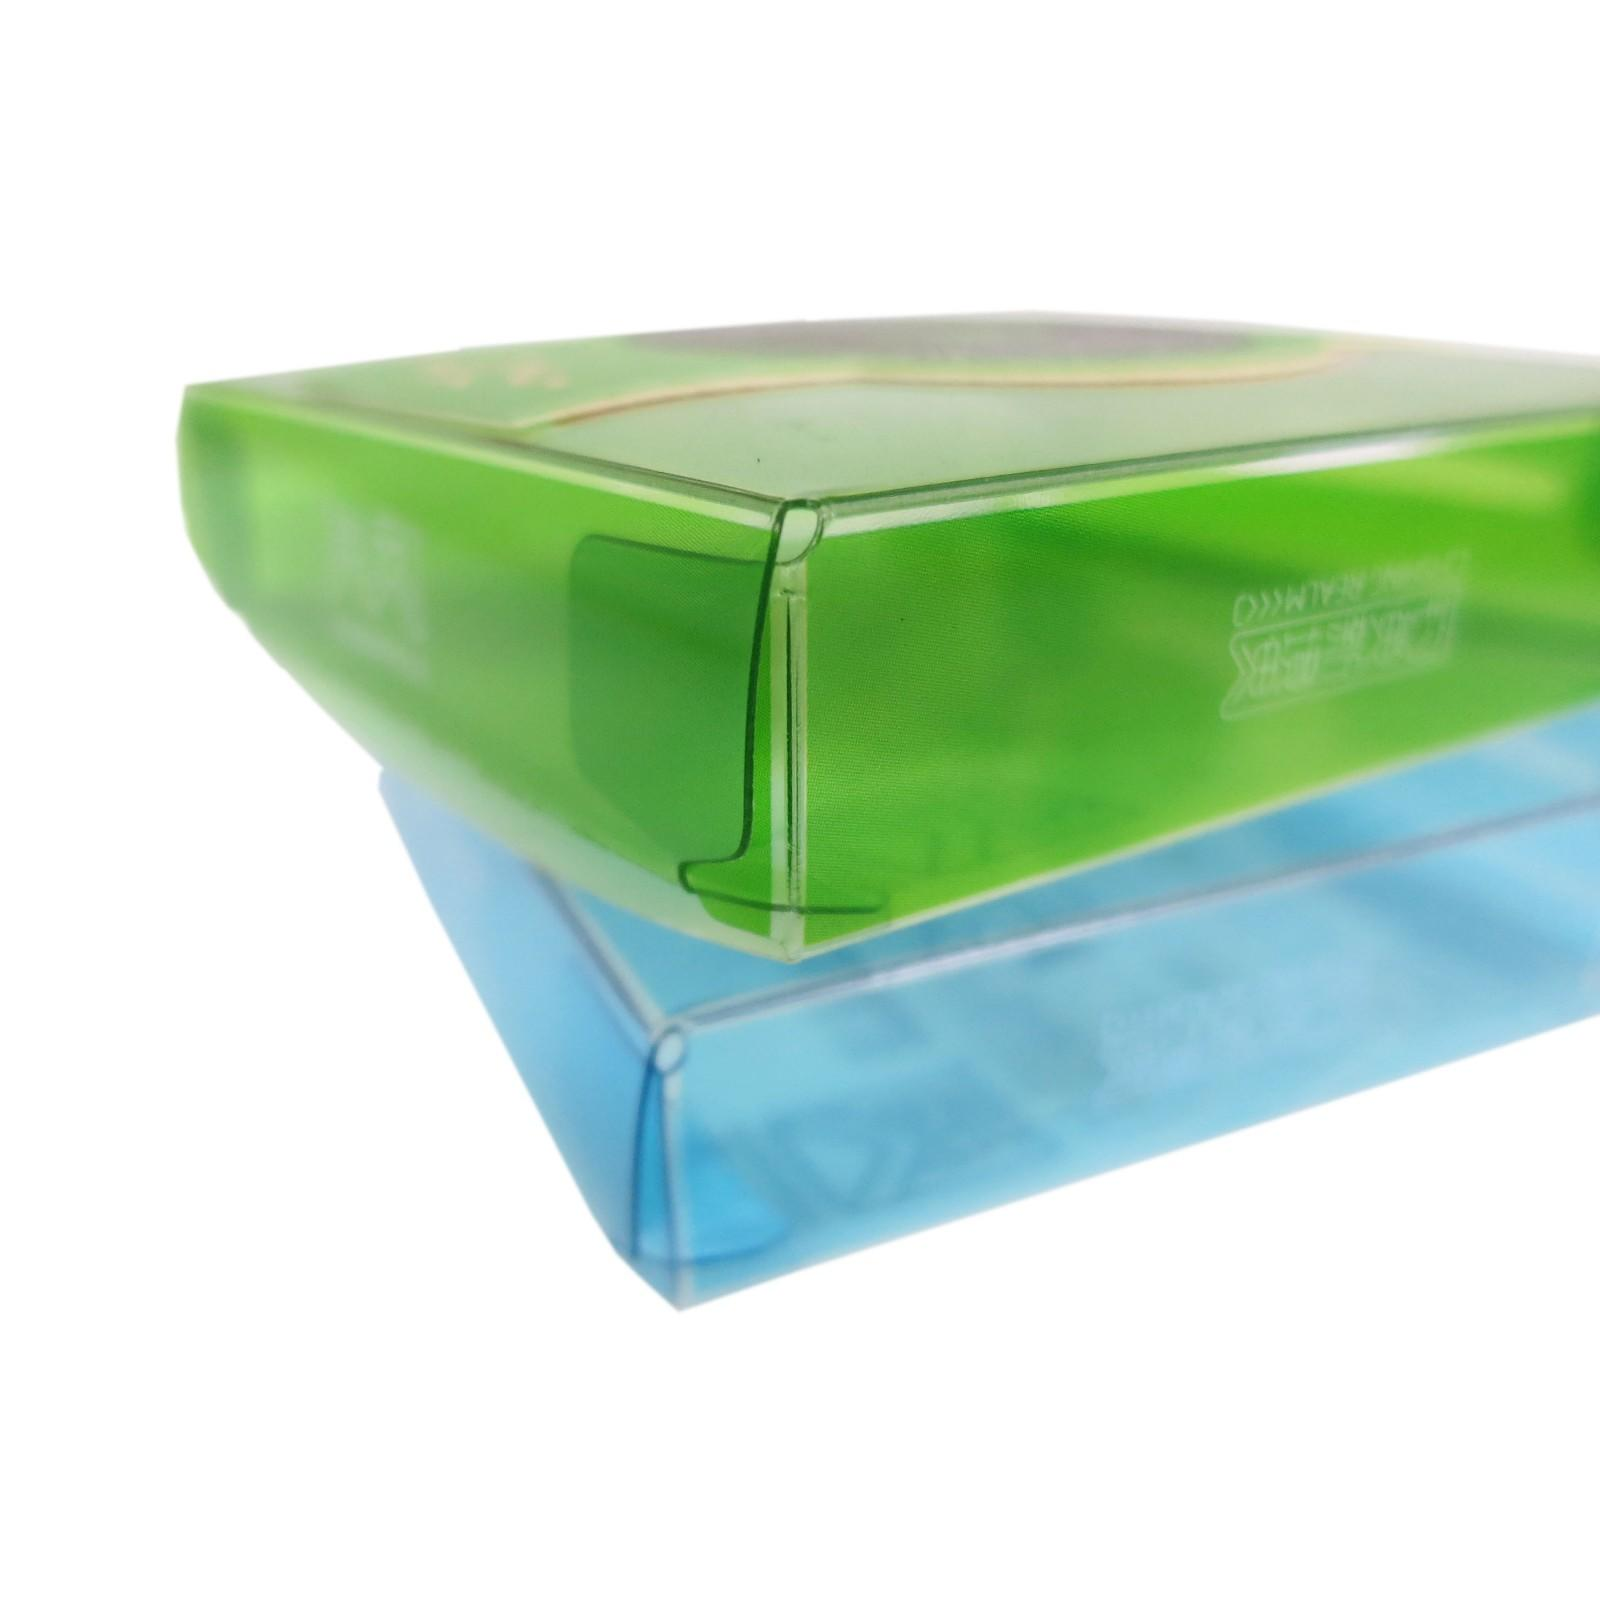 quality plastic box packaging cartoon order now for gifts